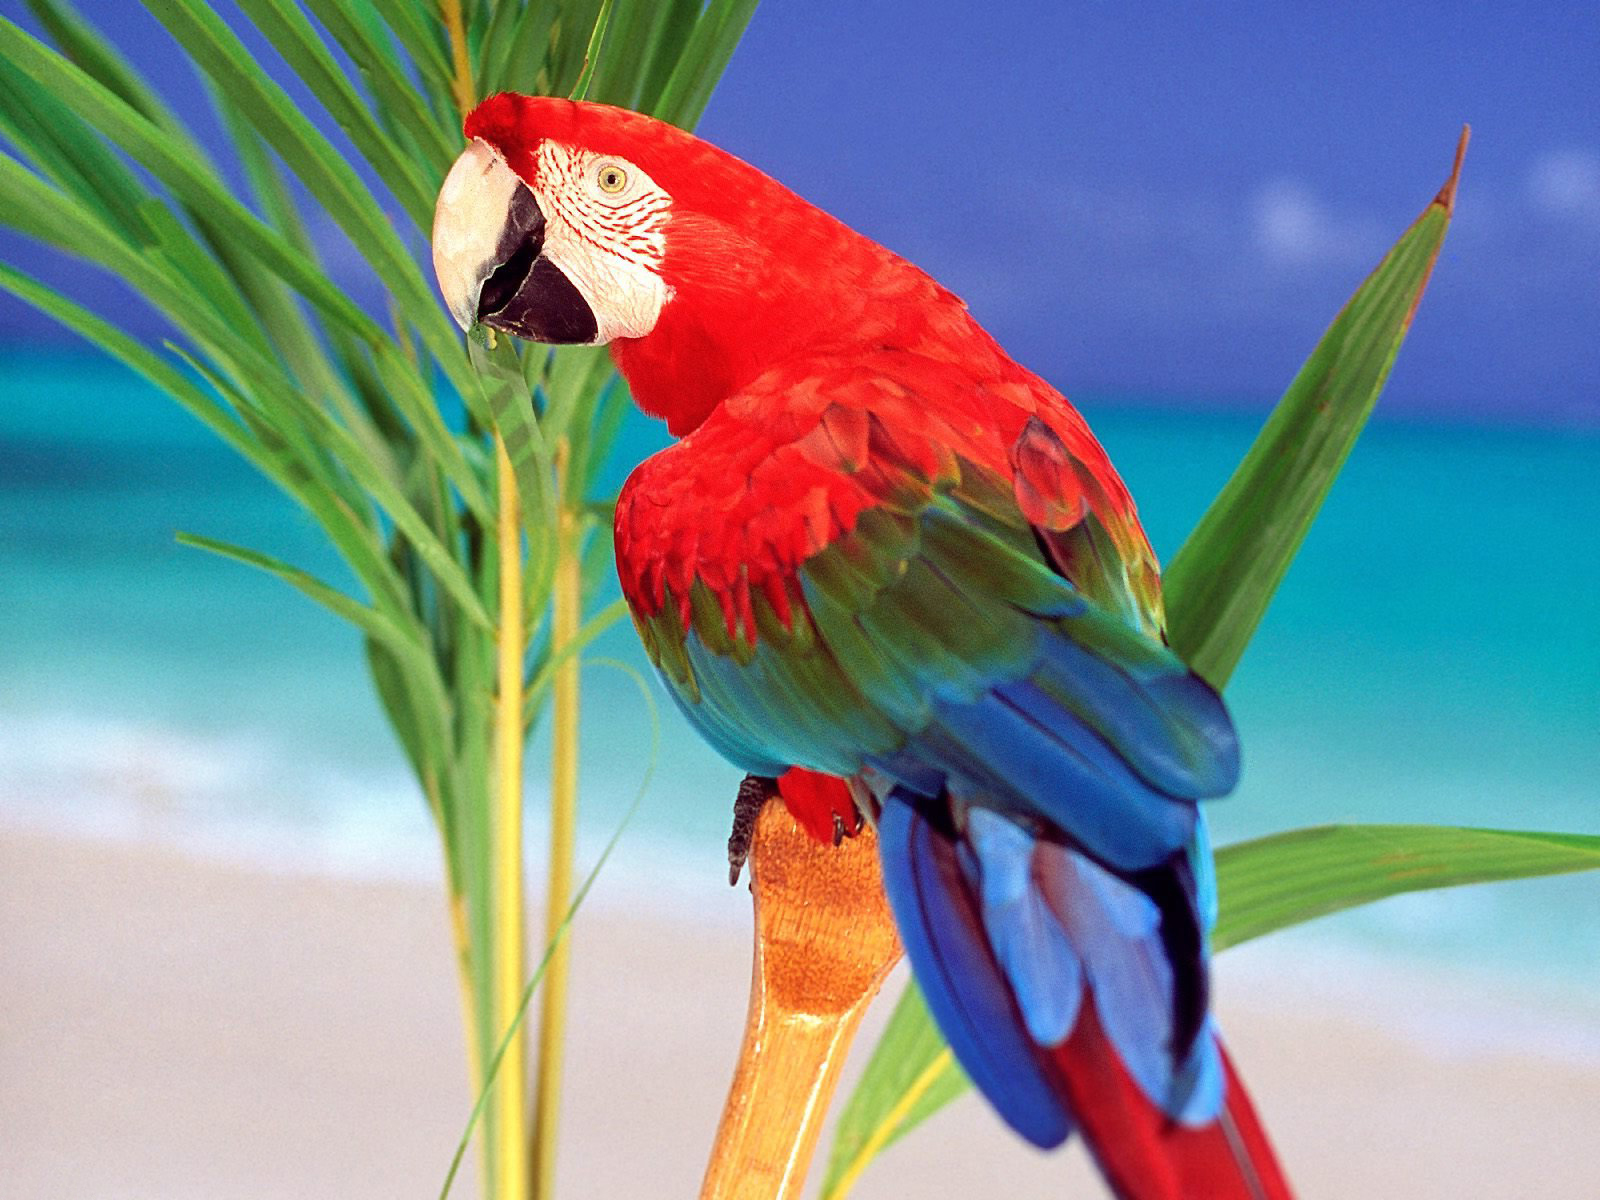 Parrot Image Hd Download , HD Wallpaper & Backgrounds